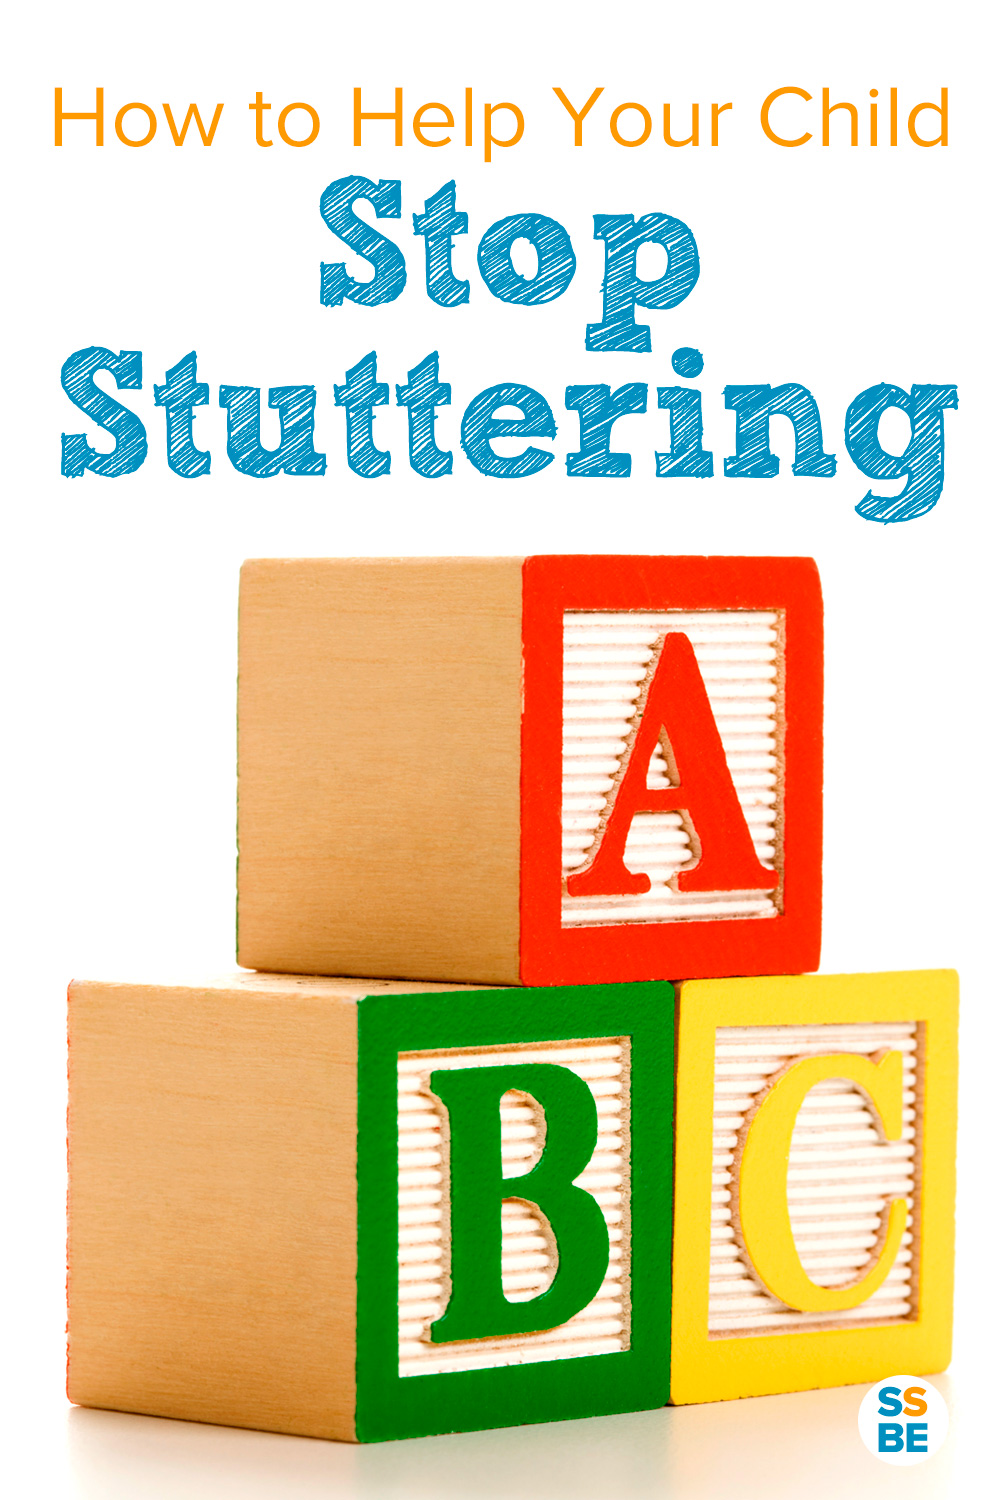 Has your child started stammering suddenly? How you react can make a difference. Here's how to help your kid stuttering.